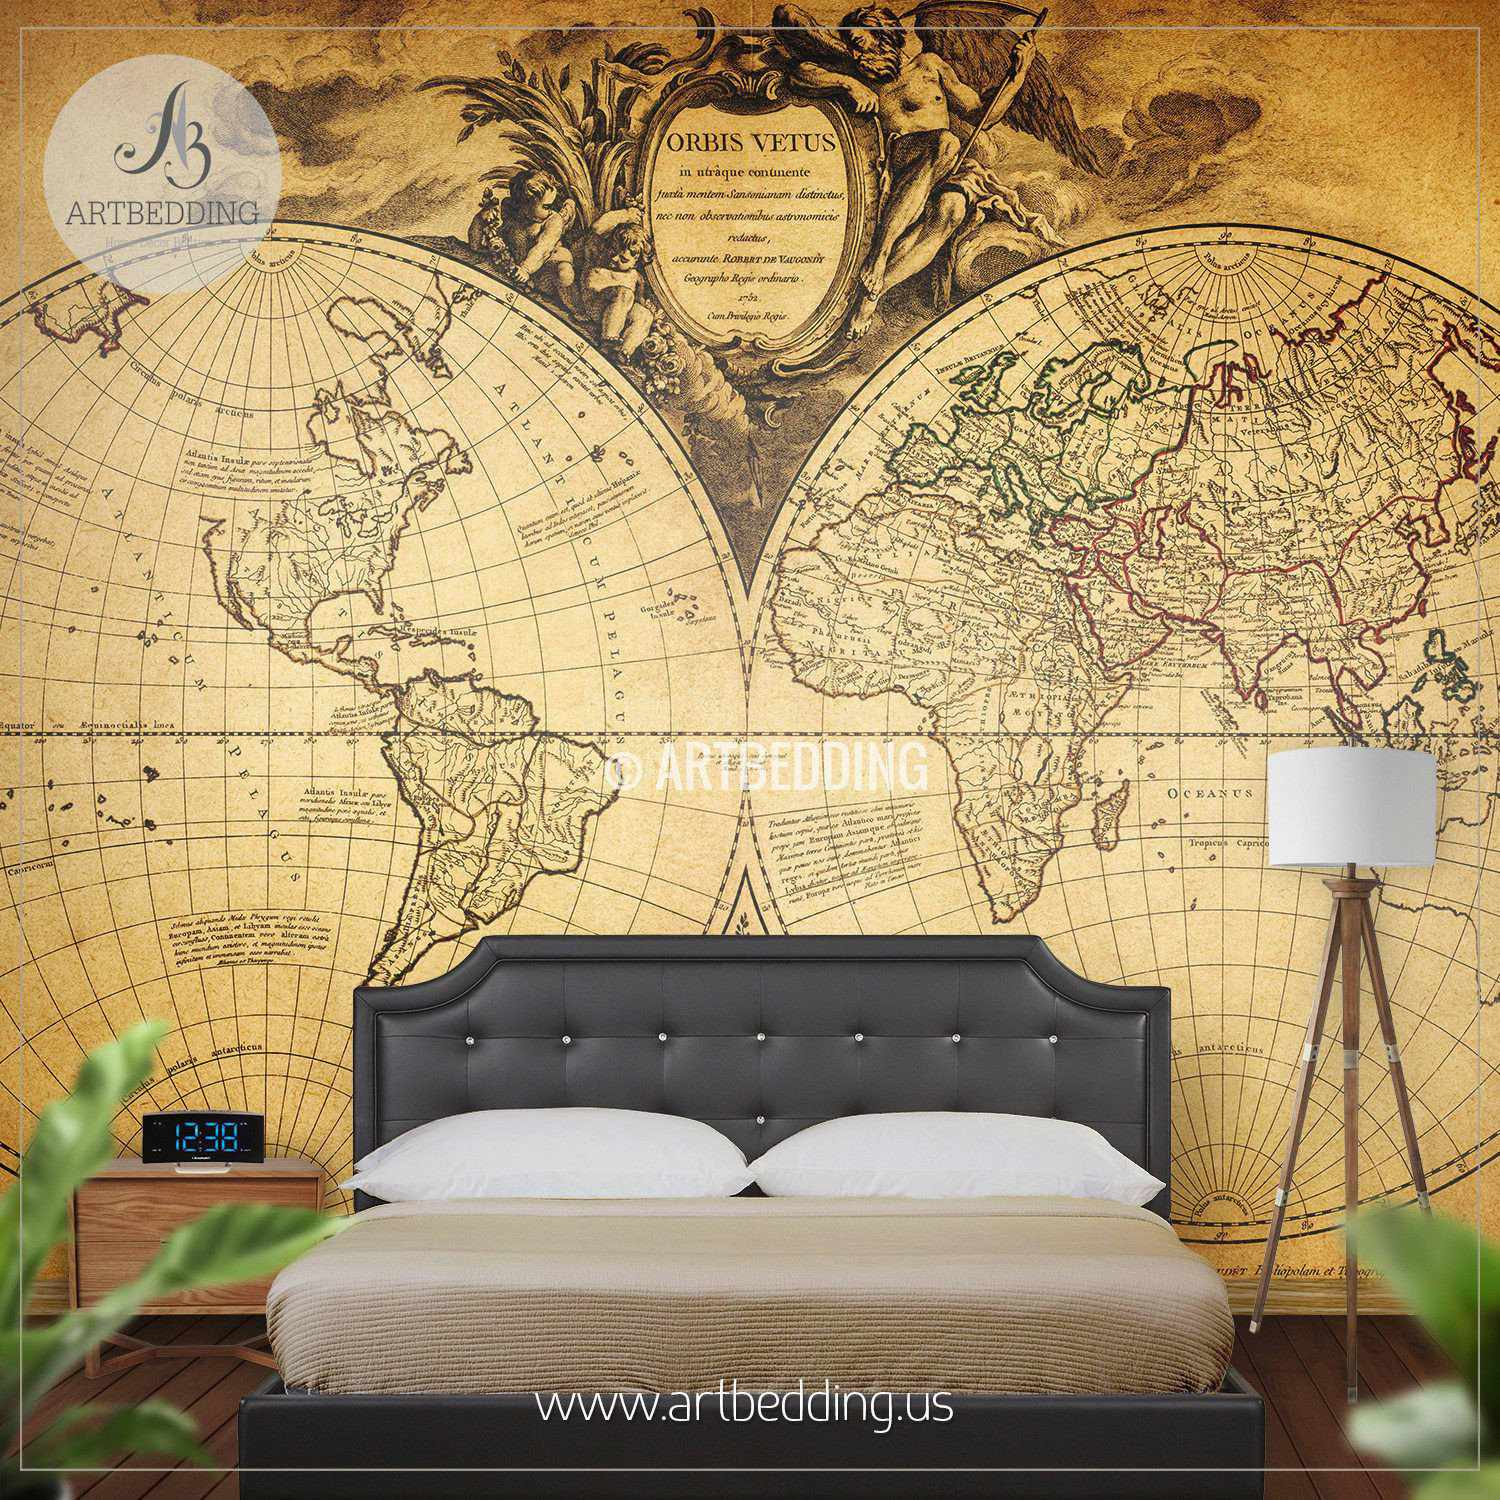 Vintage map wall mural self adhesive photo mural artbedding vintage hemisphere map wall mural self adhesive peel stick photo mural atlas wall amipublicfo Image collections